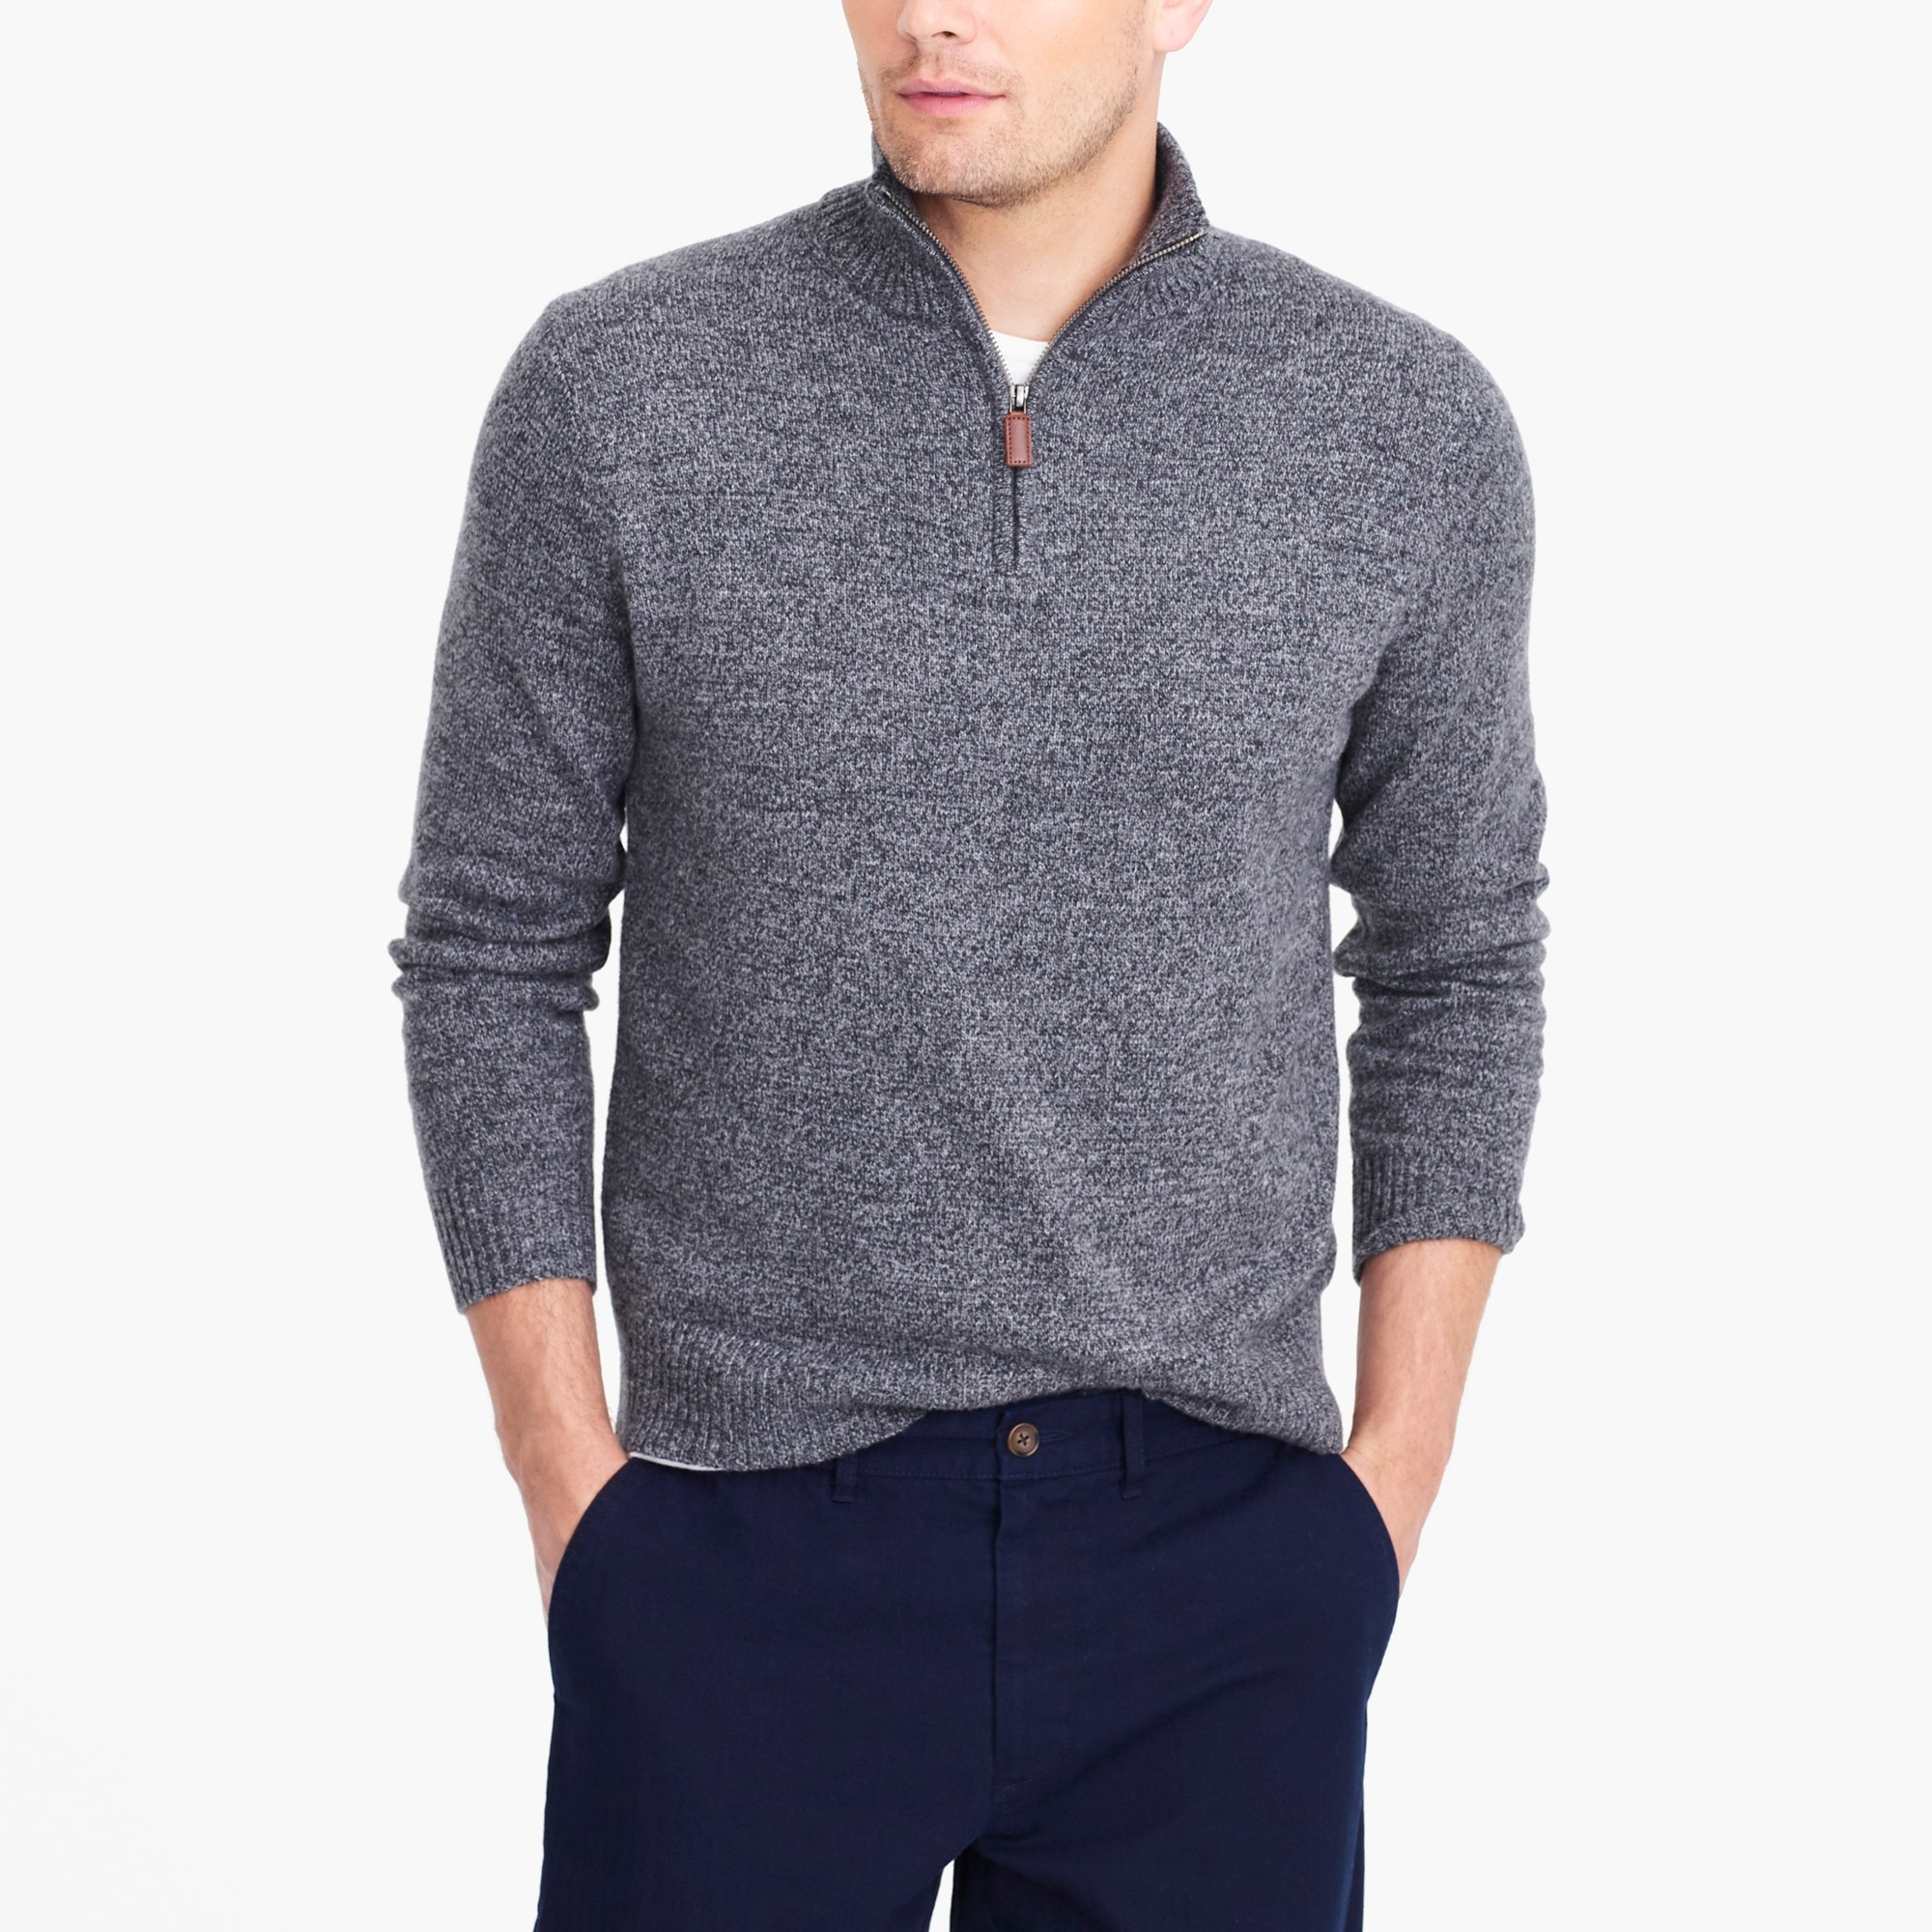 Image 1 for Half-zip sweater in supersoft wool blend